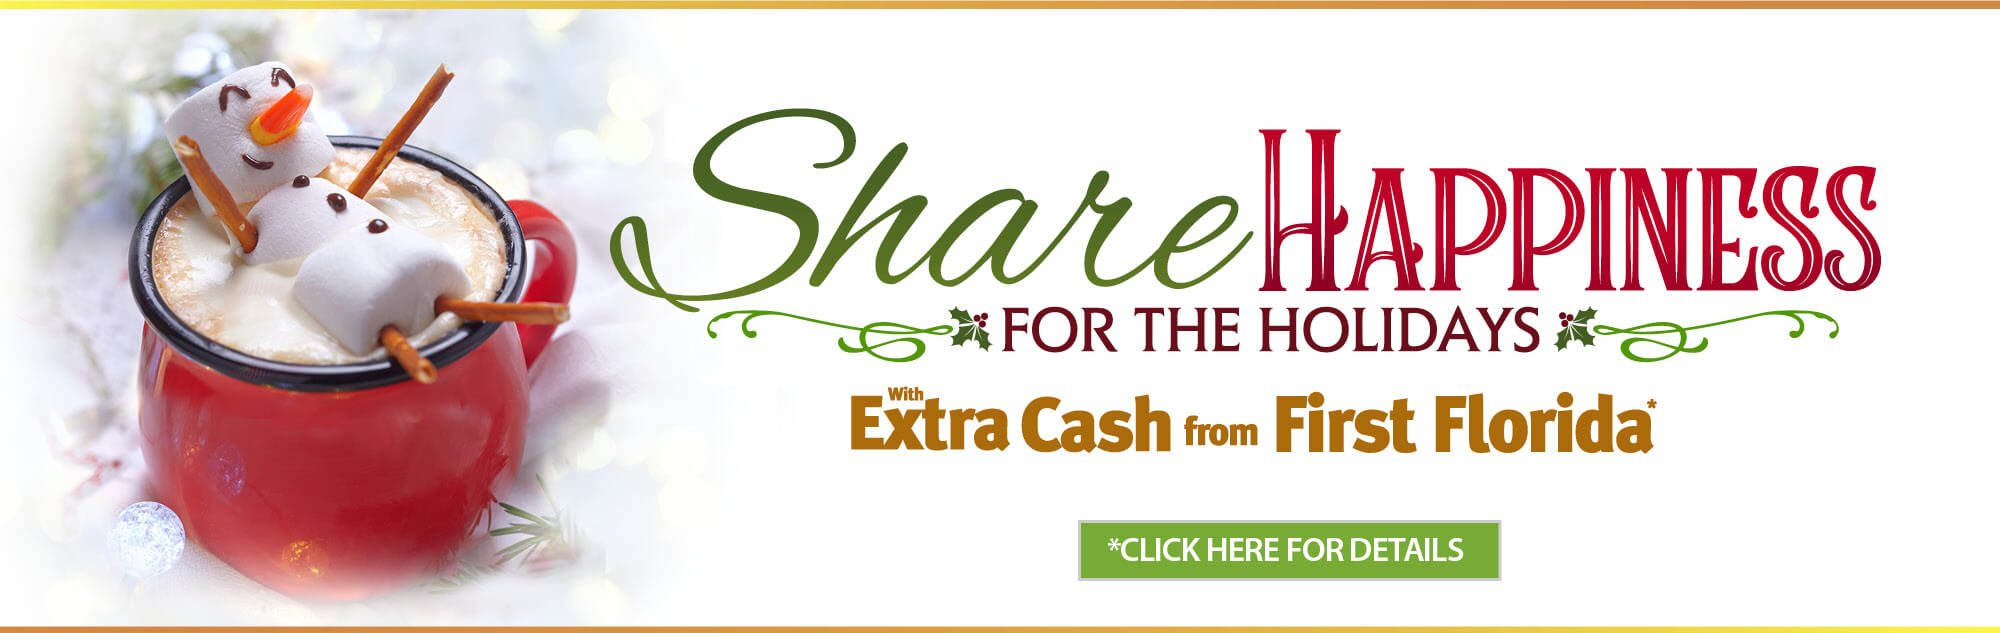 Share Happiness for the Holidays with a Winter Holiday Loan from First Florida.